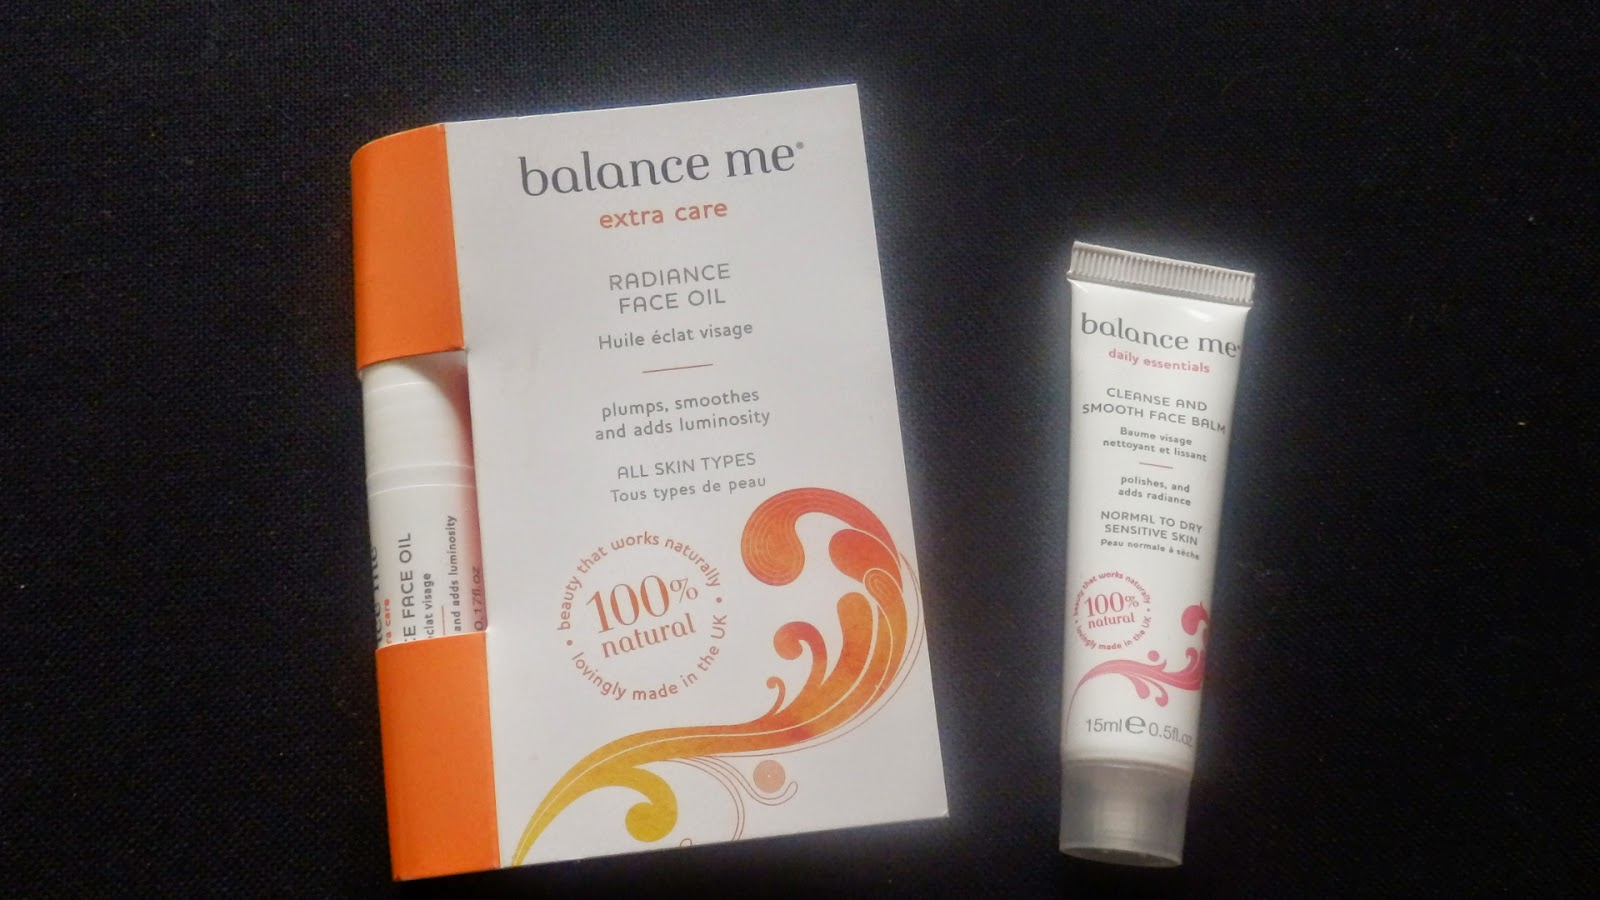 Balance Me Shopping Evening Samples